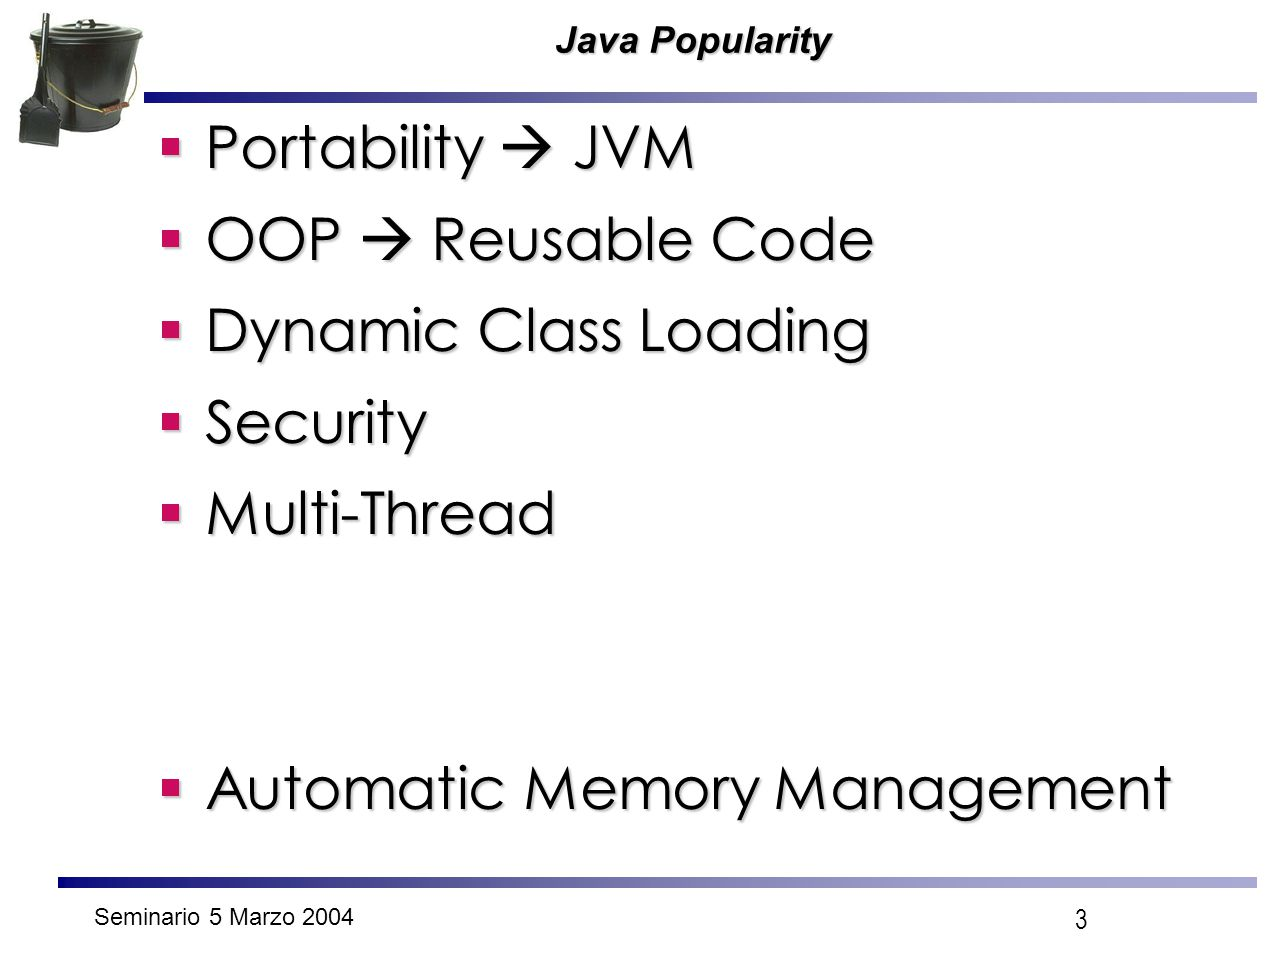 Seminario 5 Marzo 2004 3 Java Popularity  Portability  JVM  OOP  Reusable Code  Dynamic Class Loading  Security  Multi-Thread  Automatic Memor